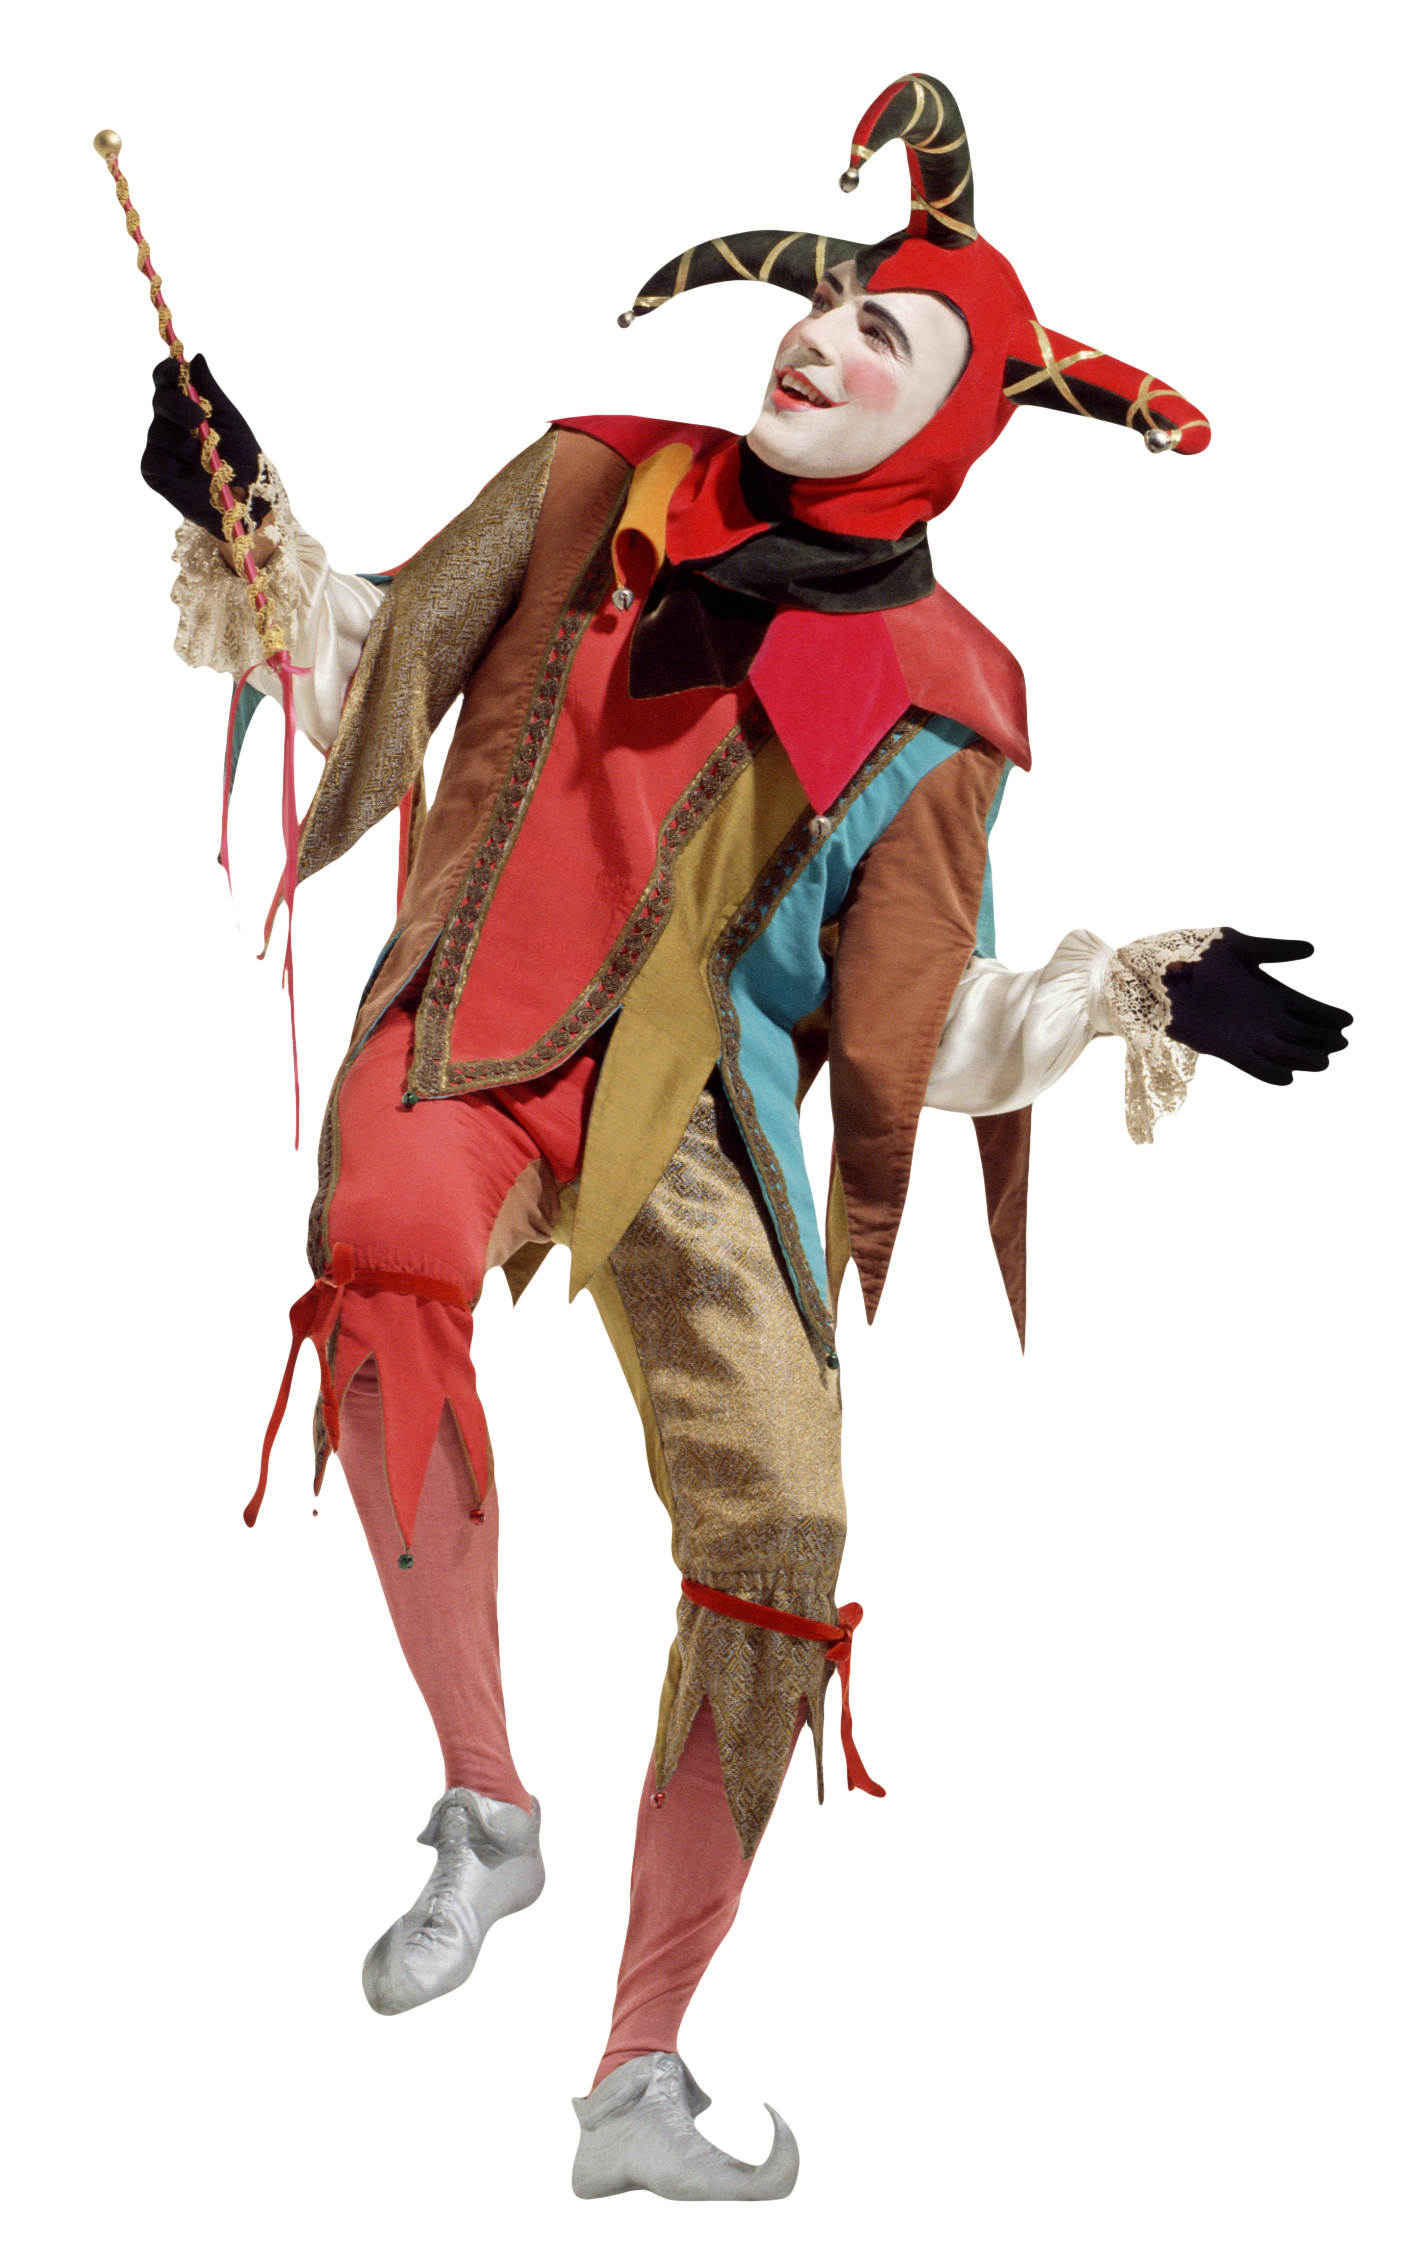 Queen clipart medieval clothing. Jester transparent png by